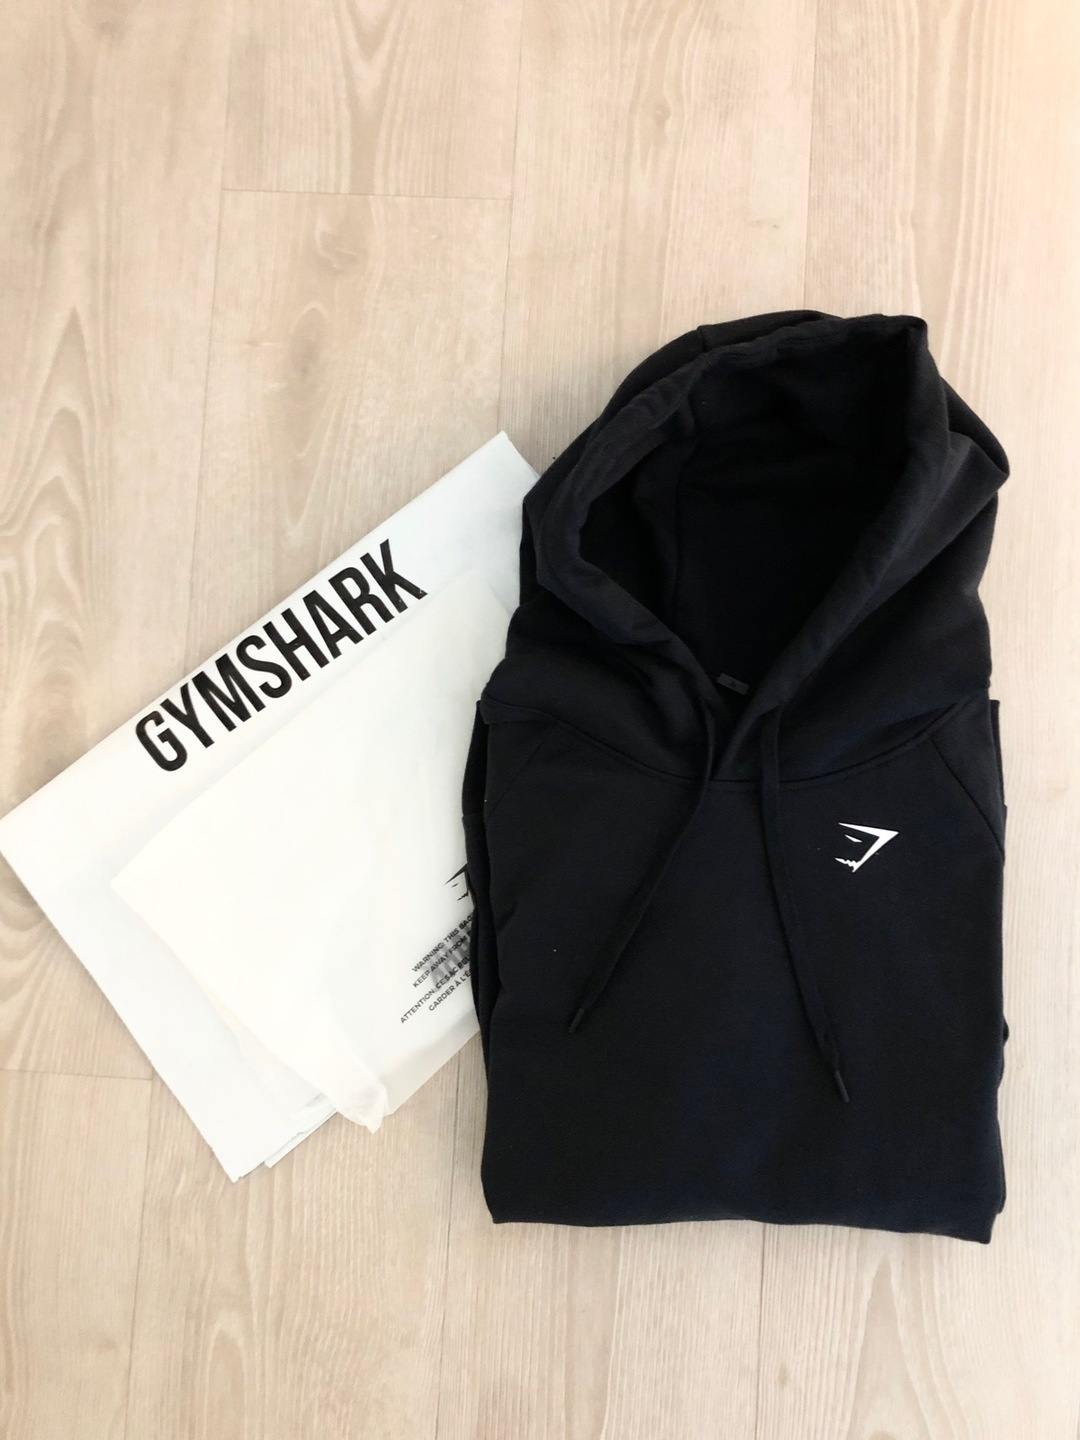 Women's hoodies & sweatshirts - GYMSHARK photo 1